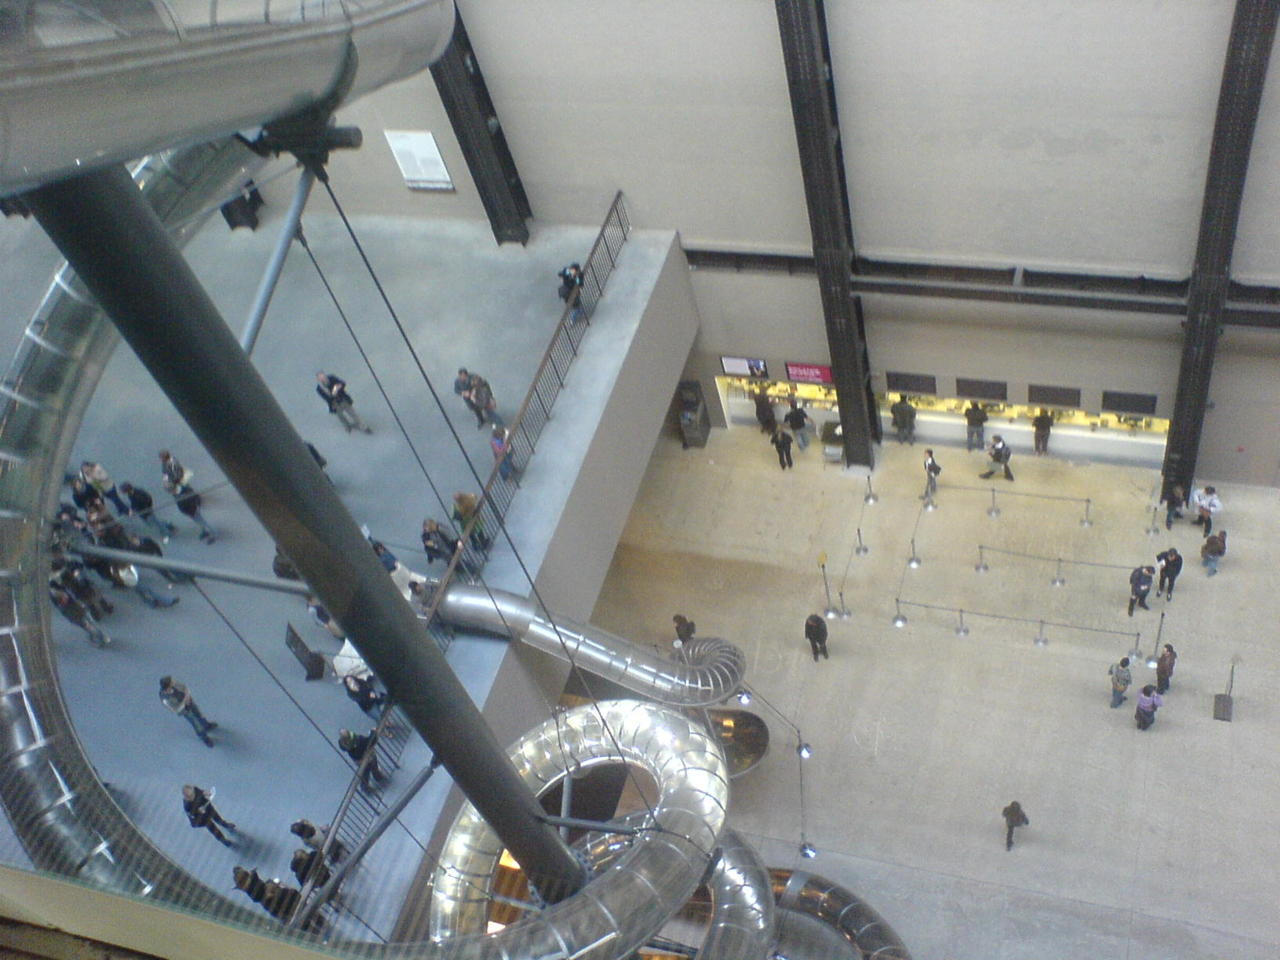 Tate Modern - The best bit of art work ever + the best slide ive ever been on. Definatly with the artist that said its better to be interactive and experience the artwork!